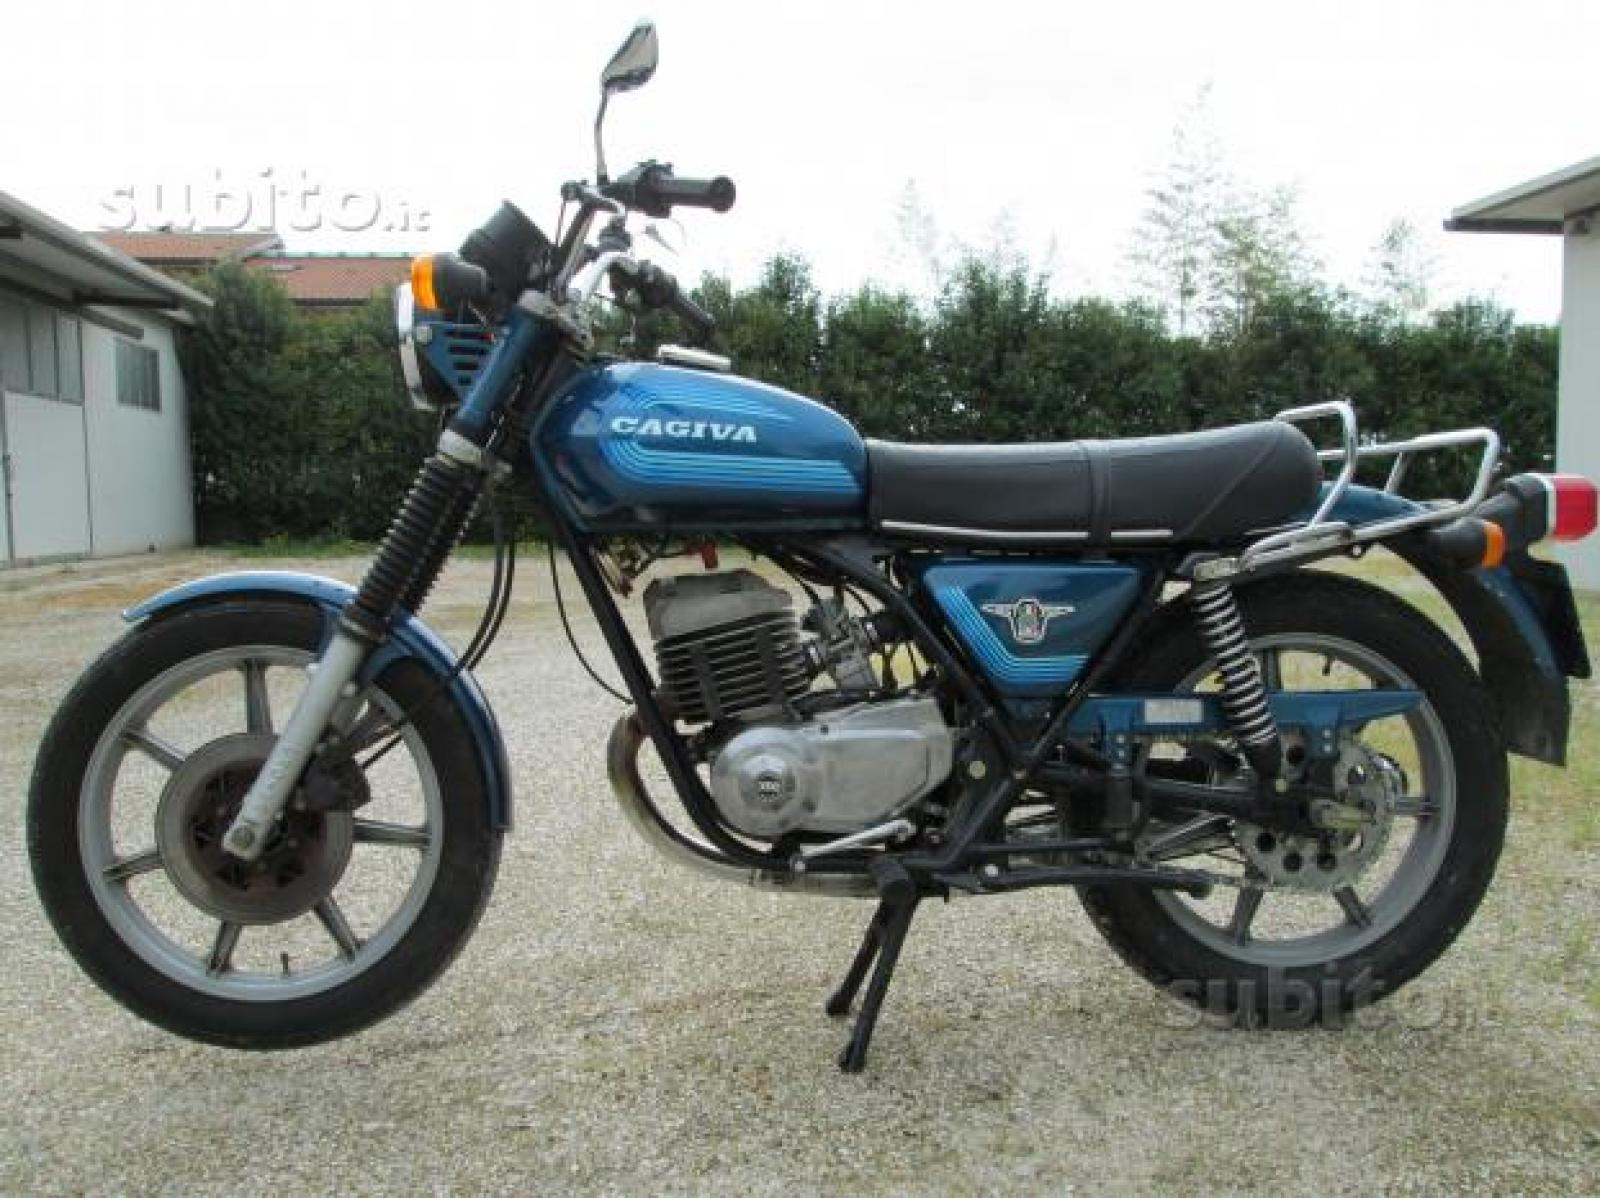 Cagiva SST 350 1981 images #68621